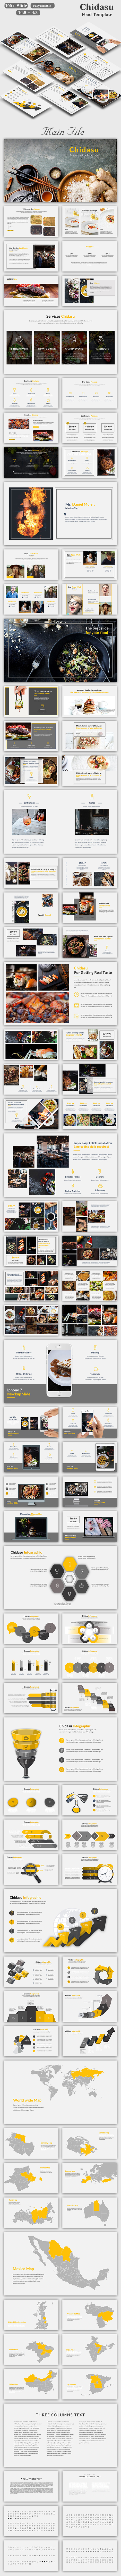 Chidasu Food Keynote Template - Creative Keynote Templates